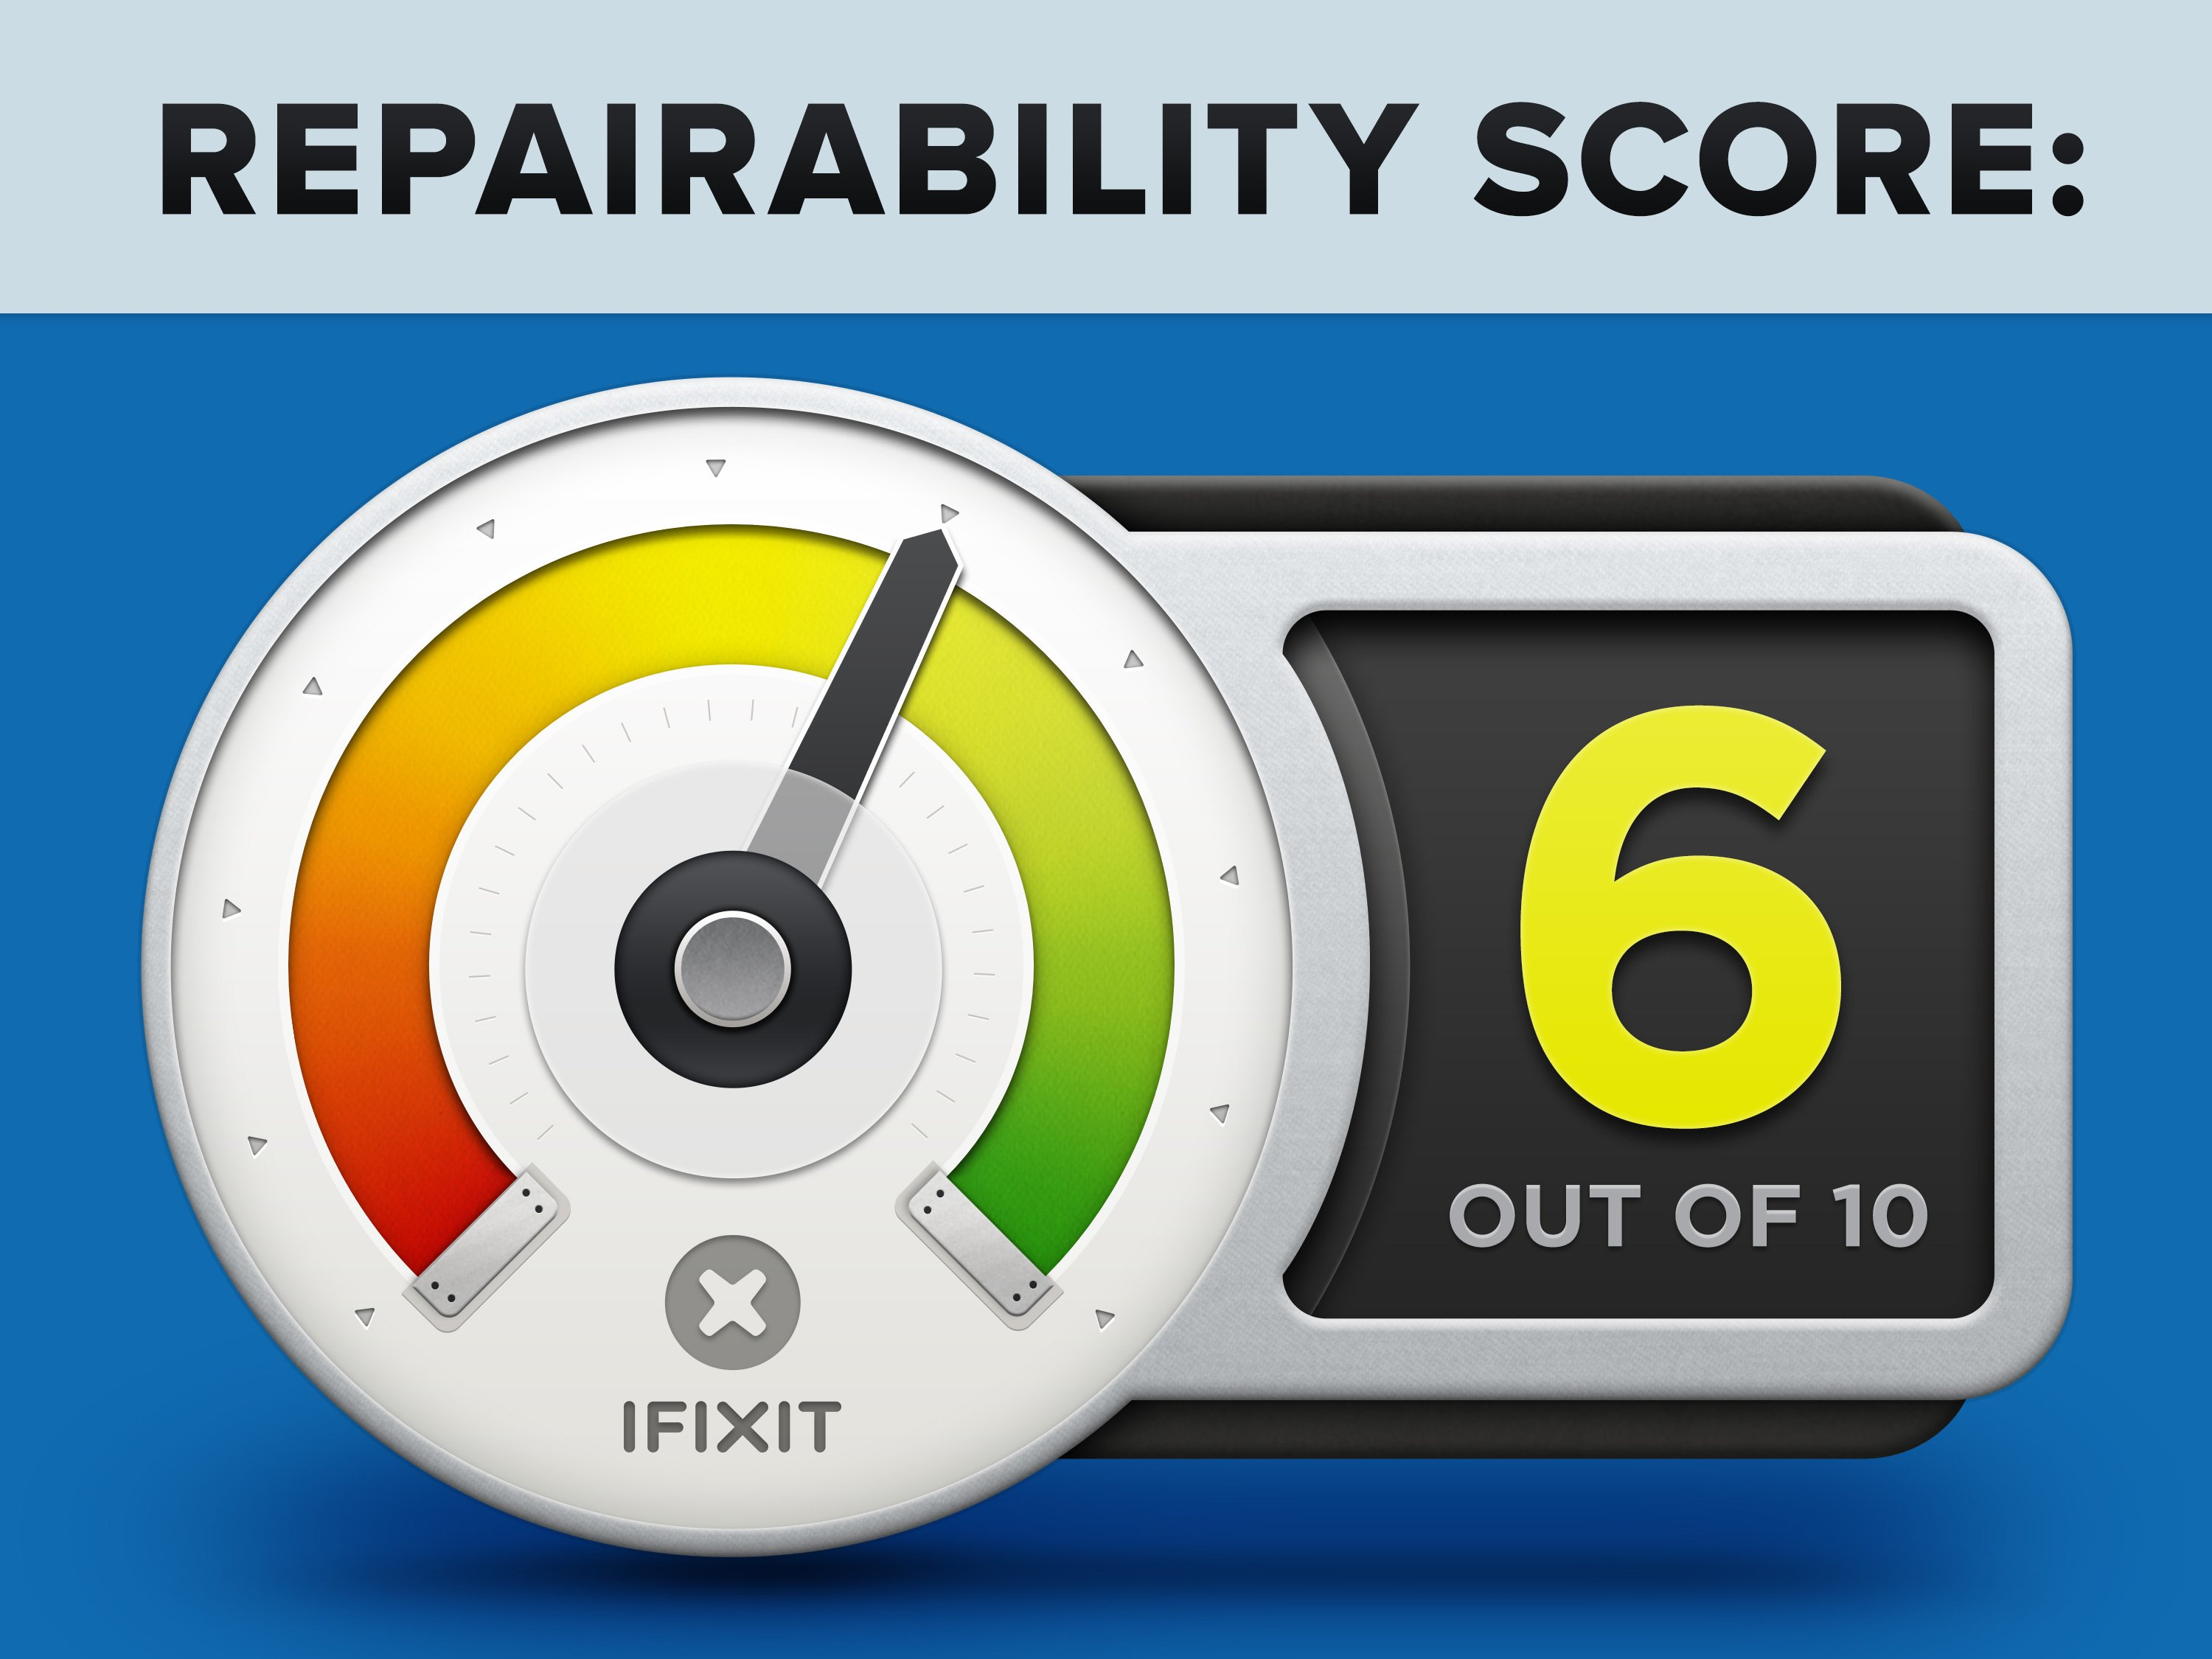 Repairability score of 6 out of 10.